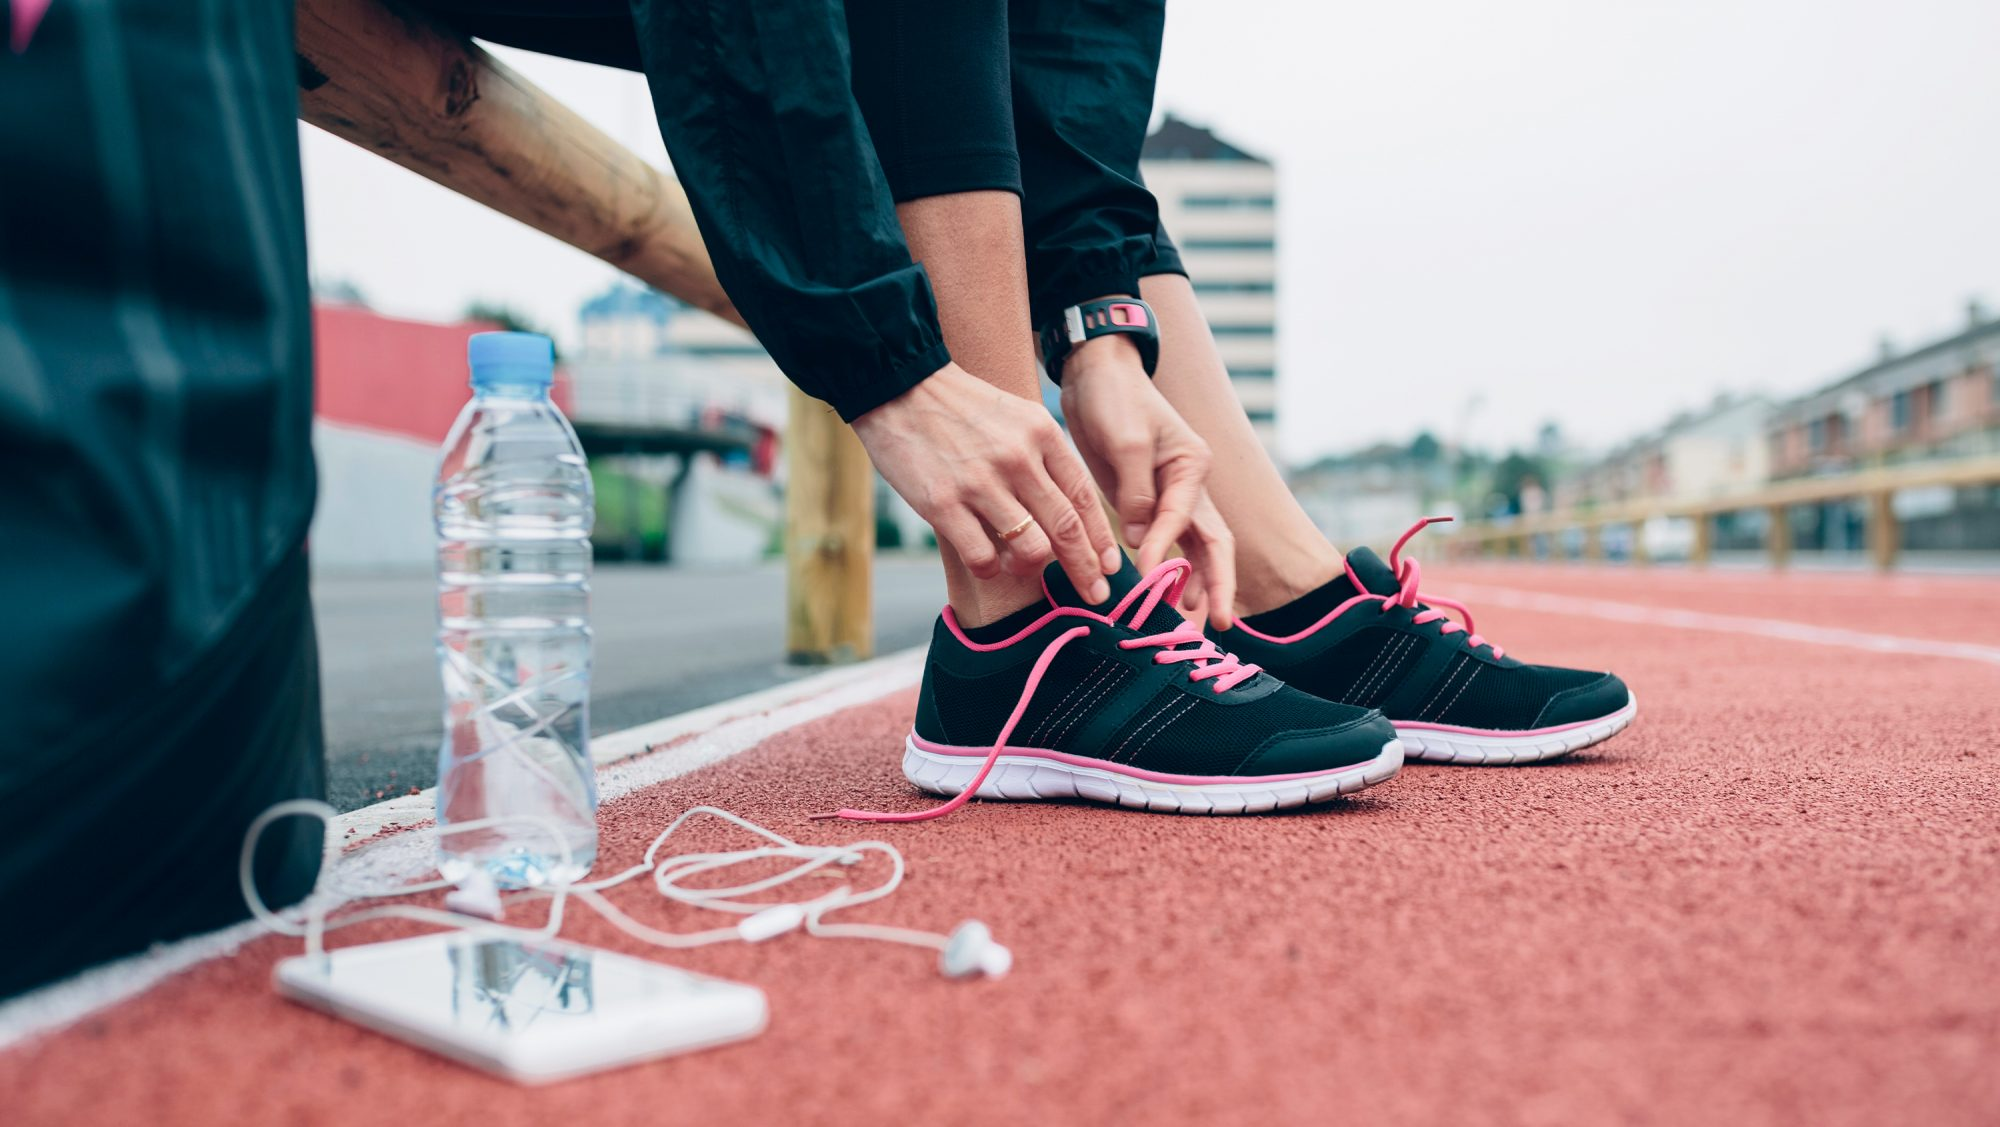 woman tying running sneakers for her afternoon workout